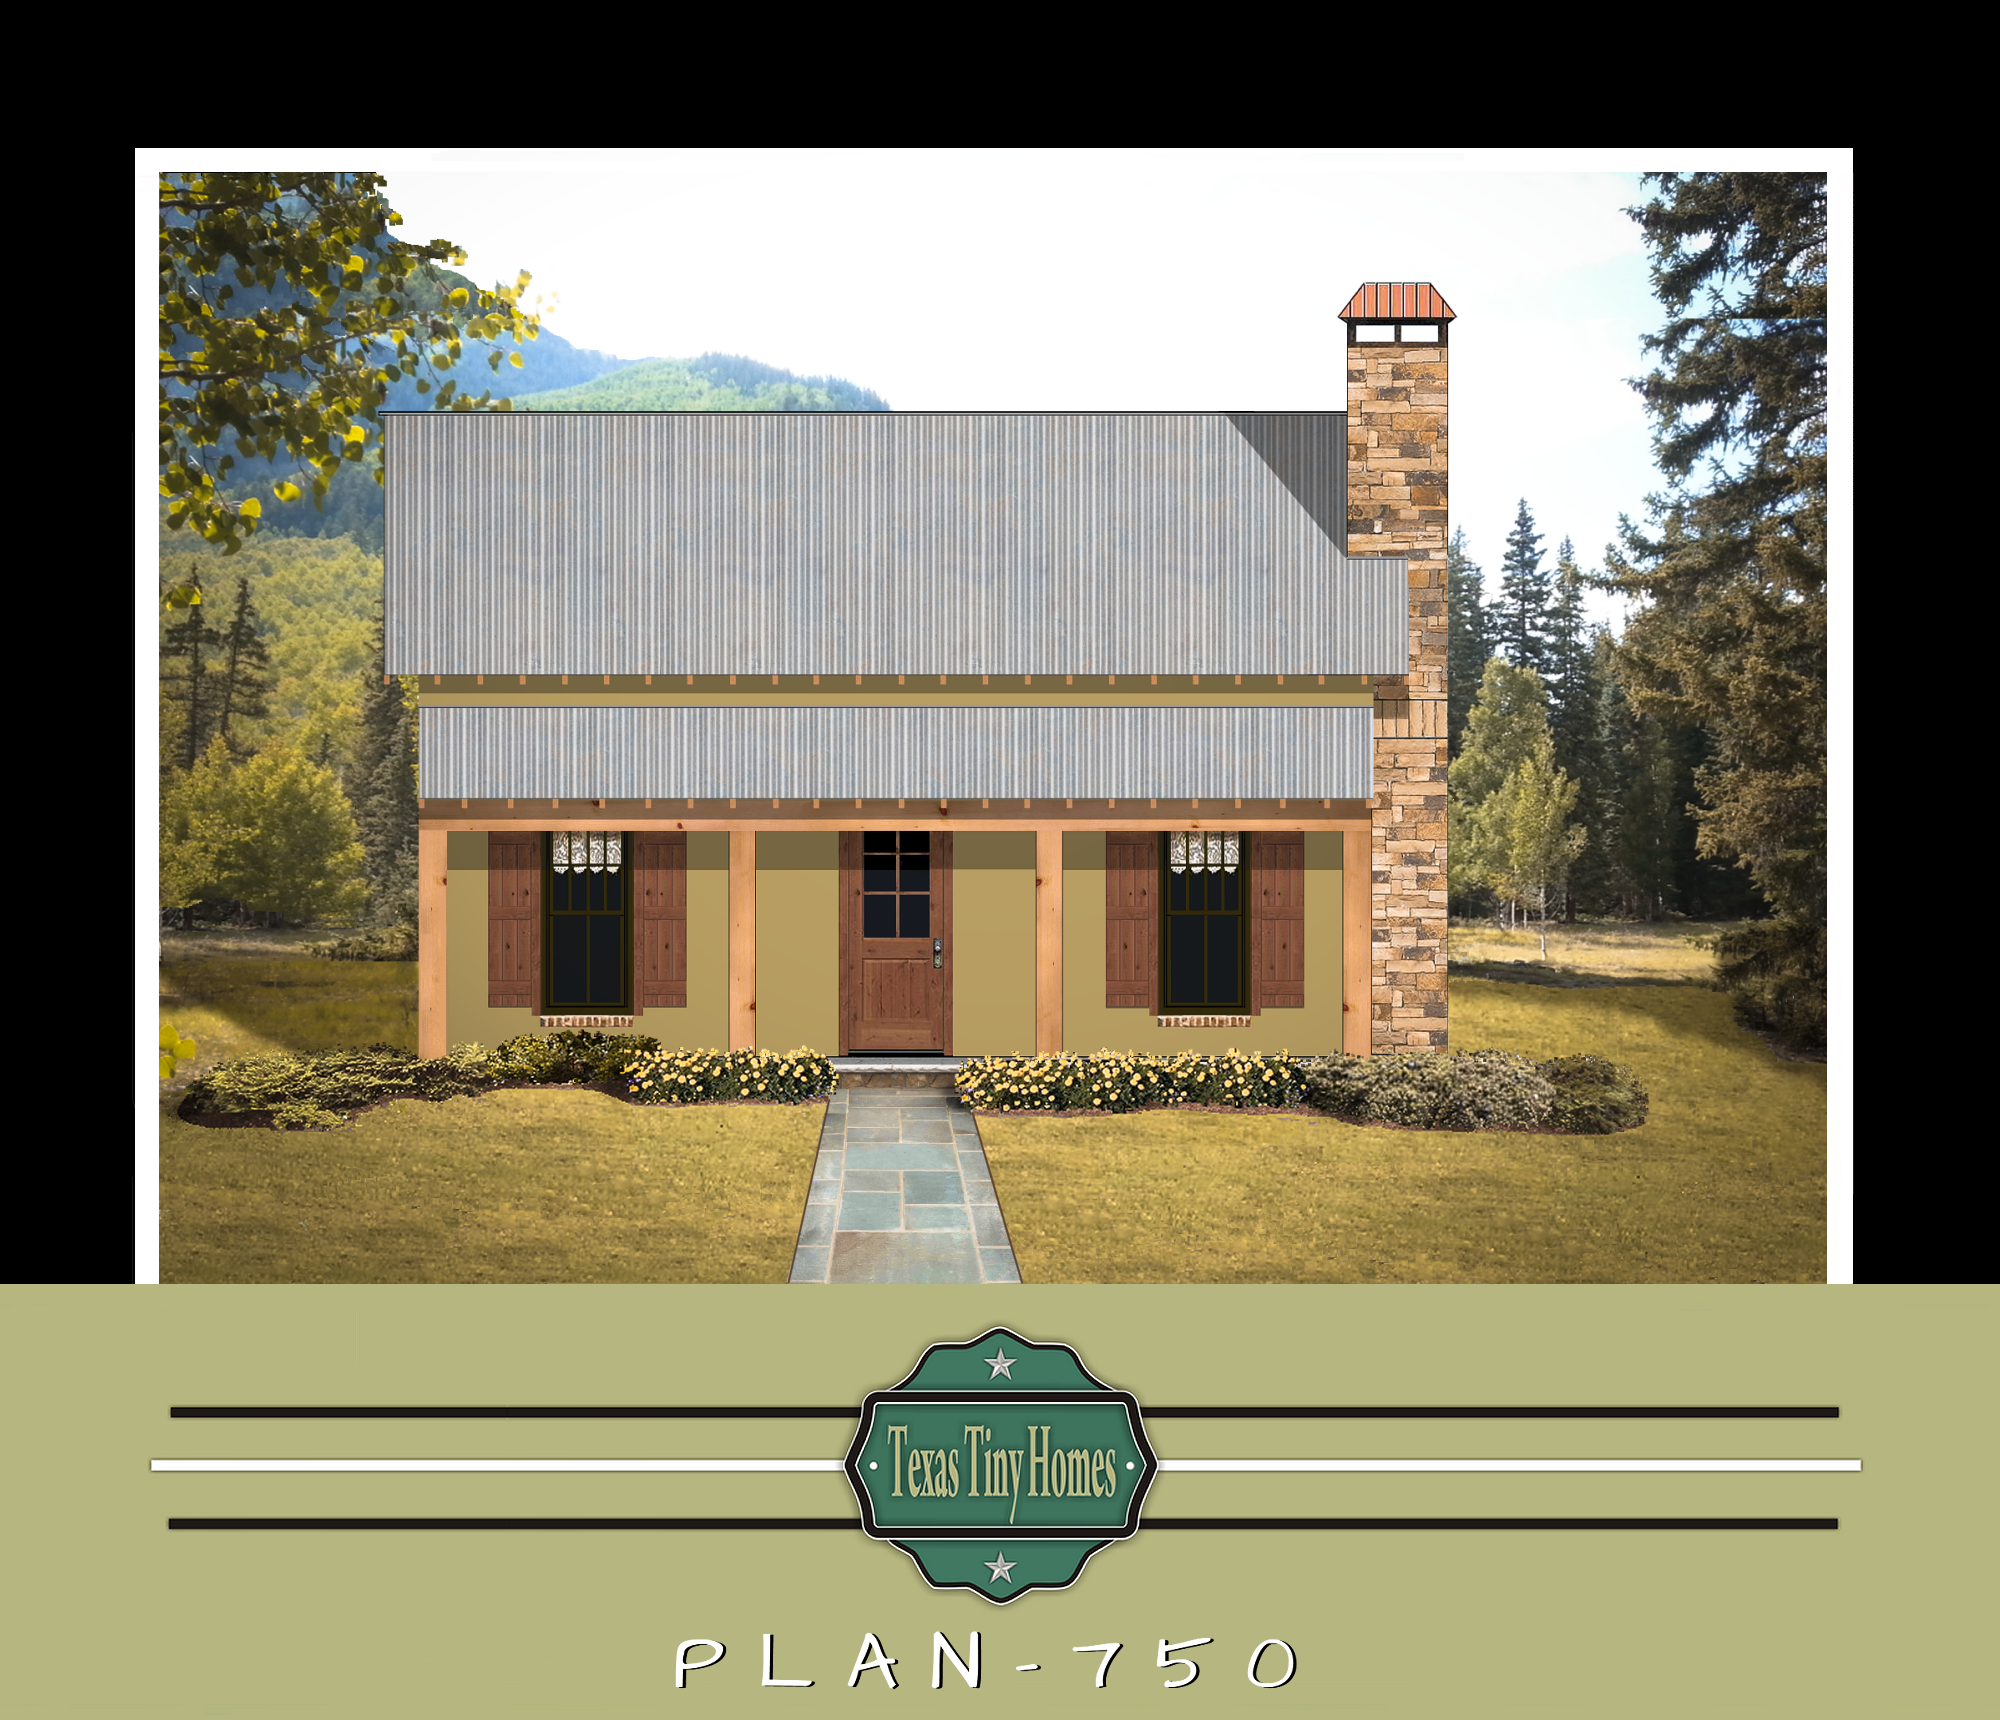 Texas tiny homes plan 750 for Houses plans for sale